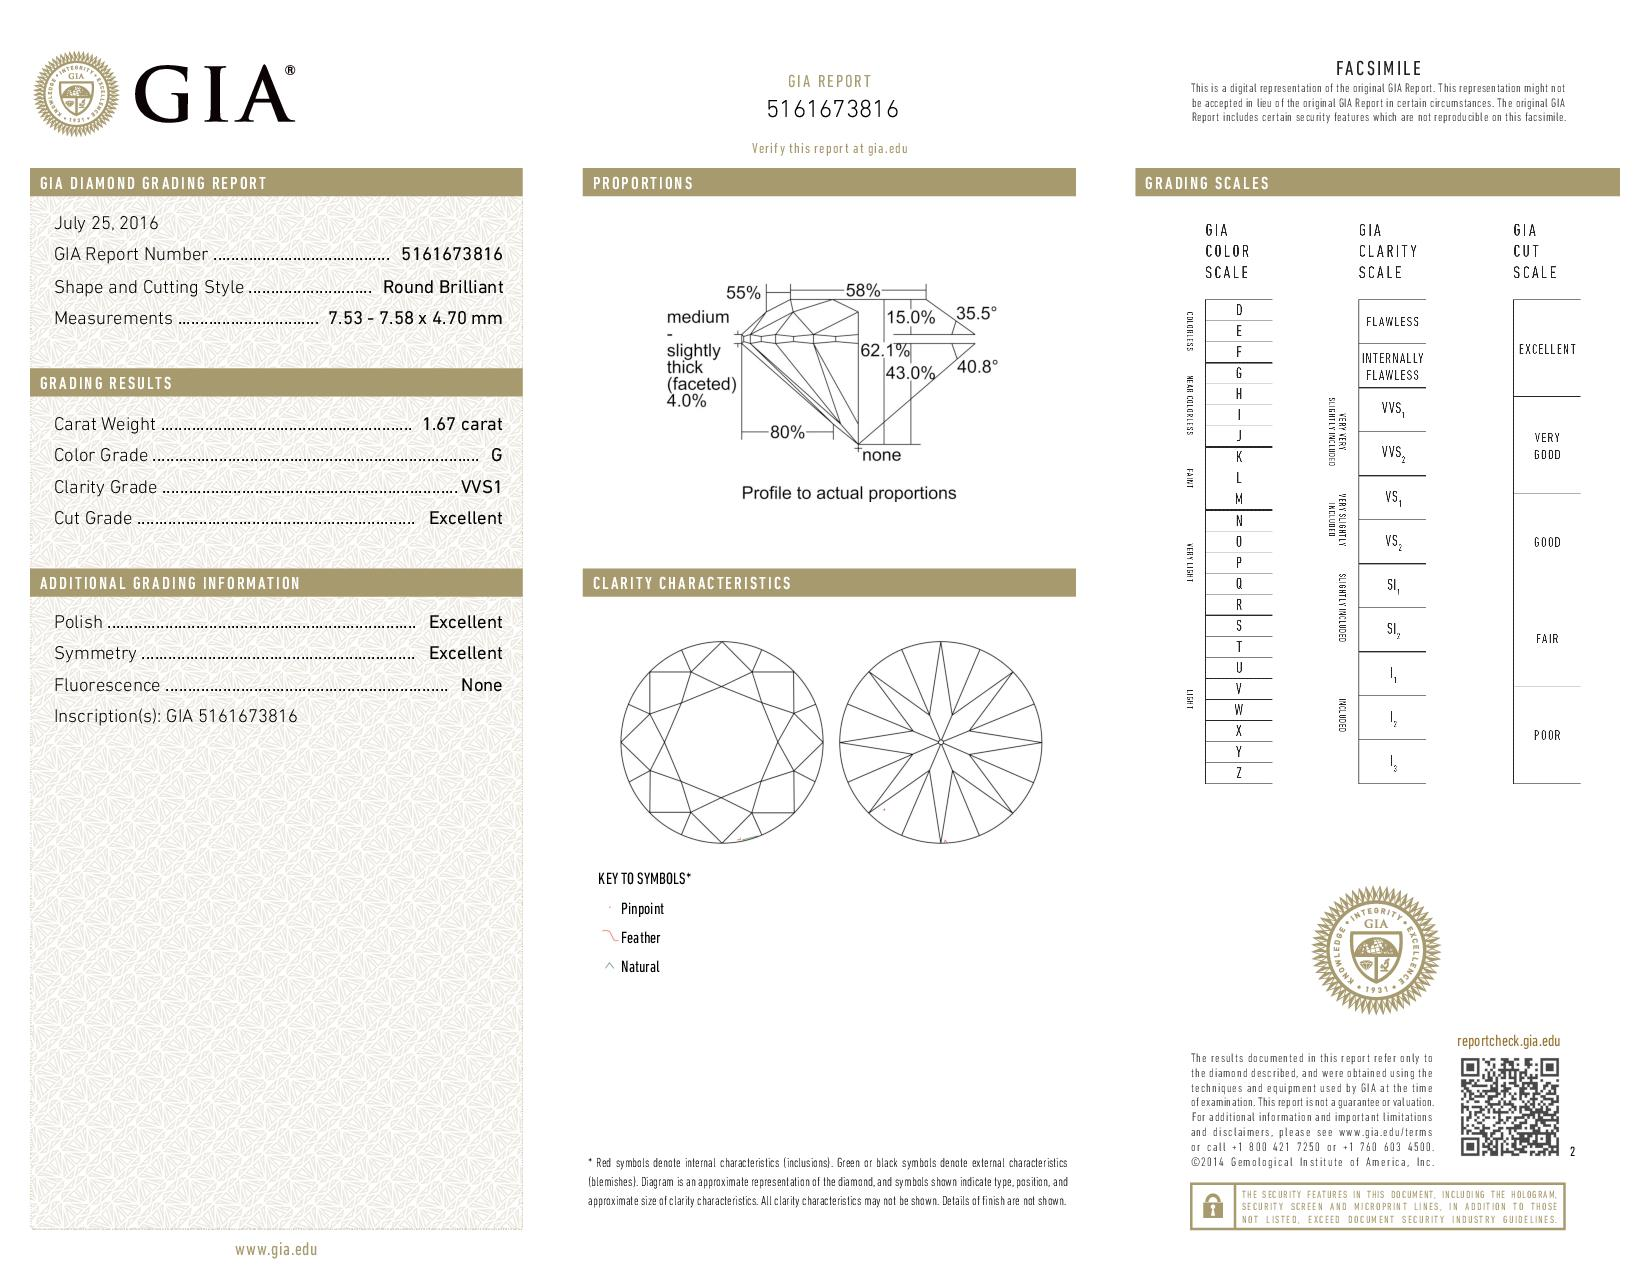 This is a 1.67 carat round shape, G color, VVS1 clarity natural diamond accompanied by a GIA grading report.